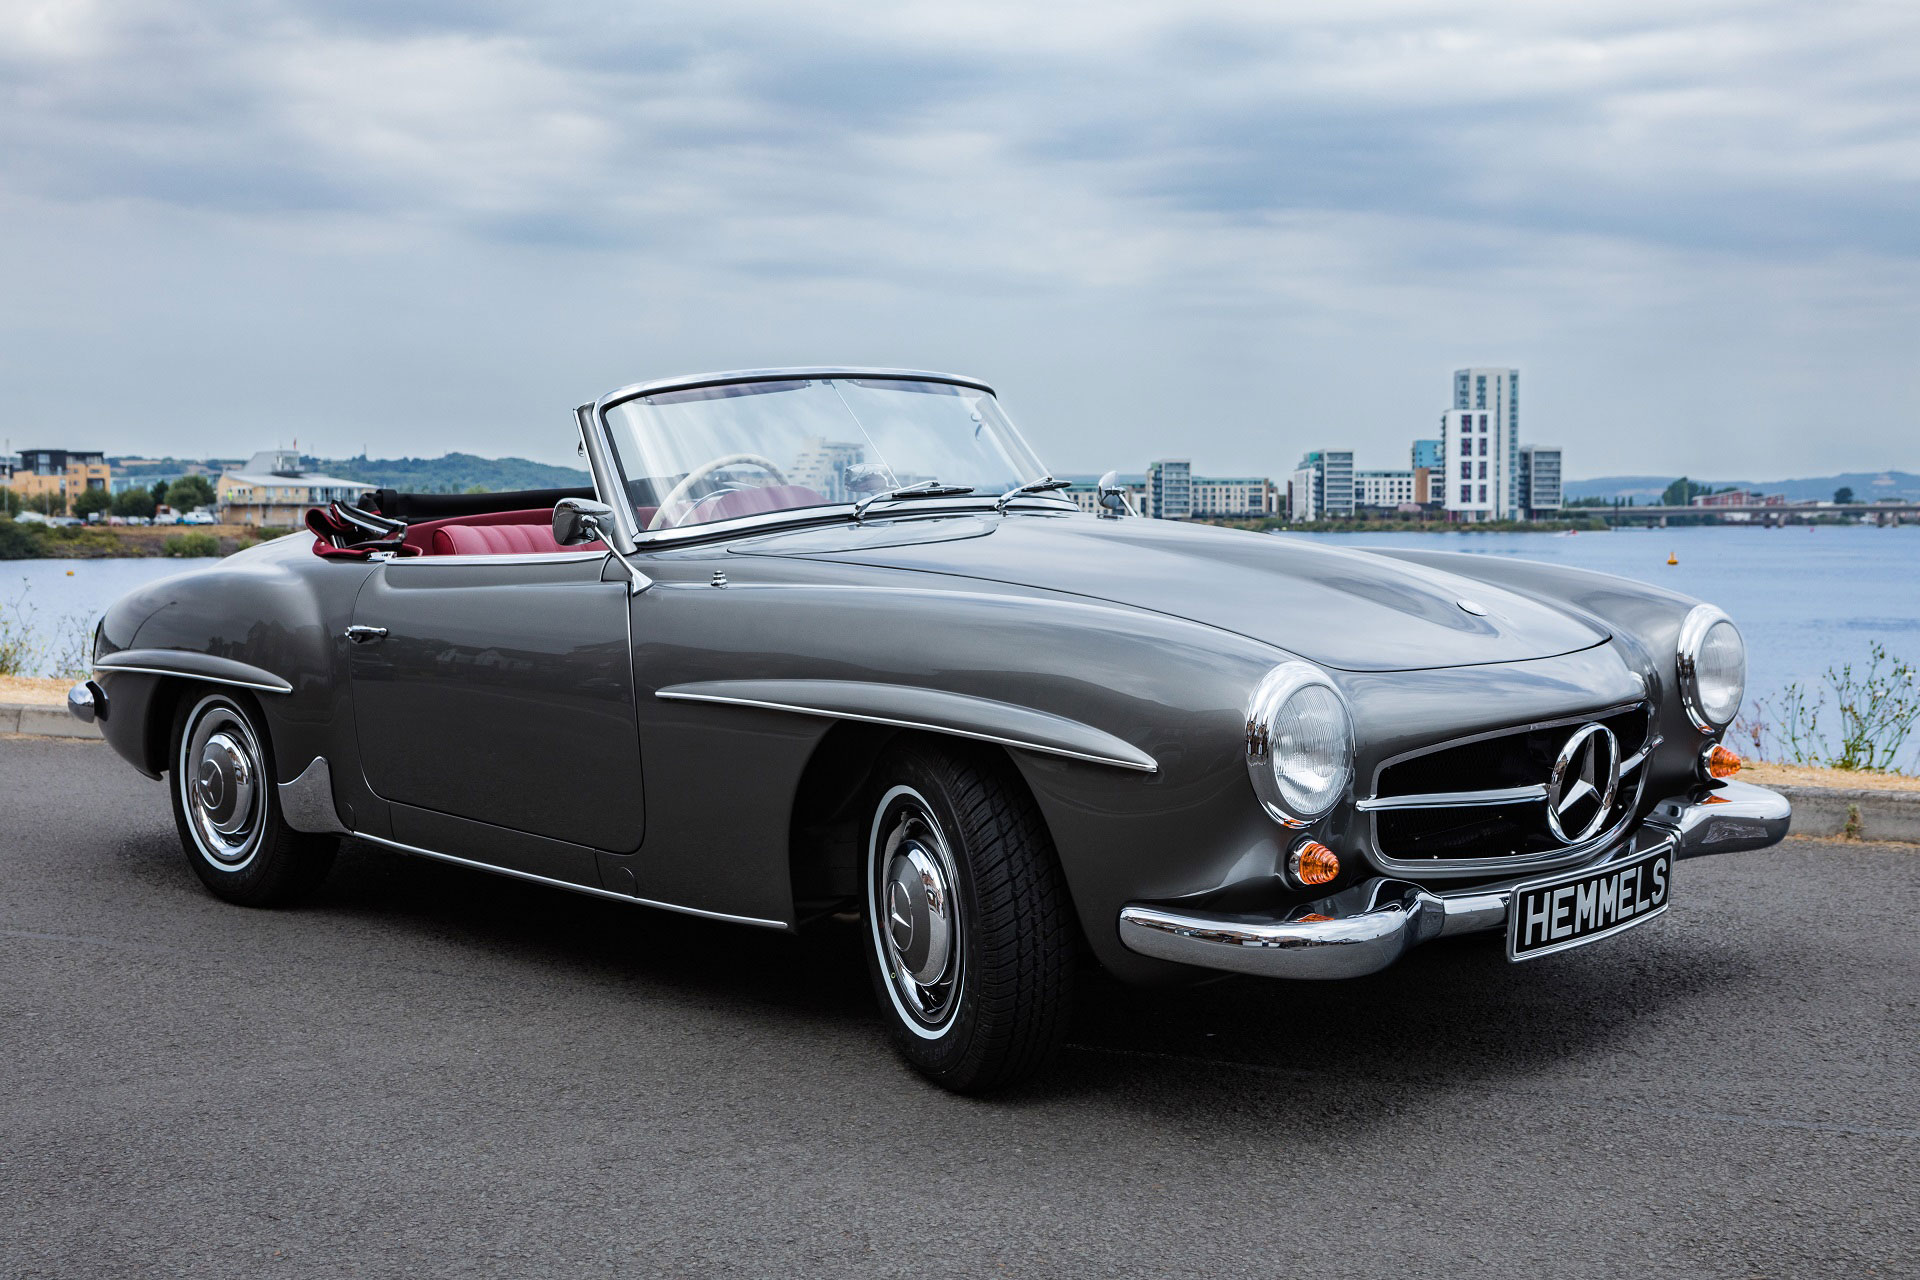 Classic 1963 Mercedes-Benz W121 190SL Roadster in Anthracite with red interior